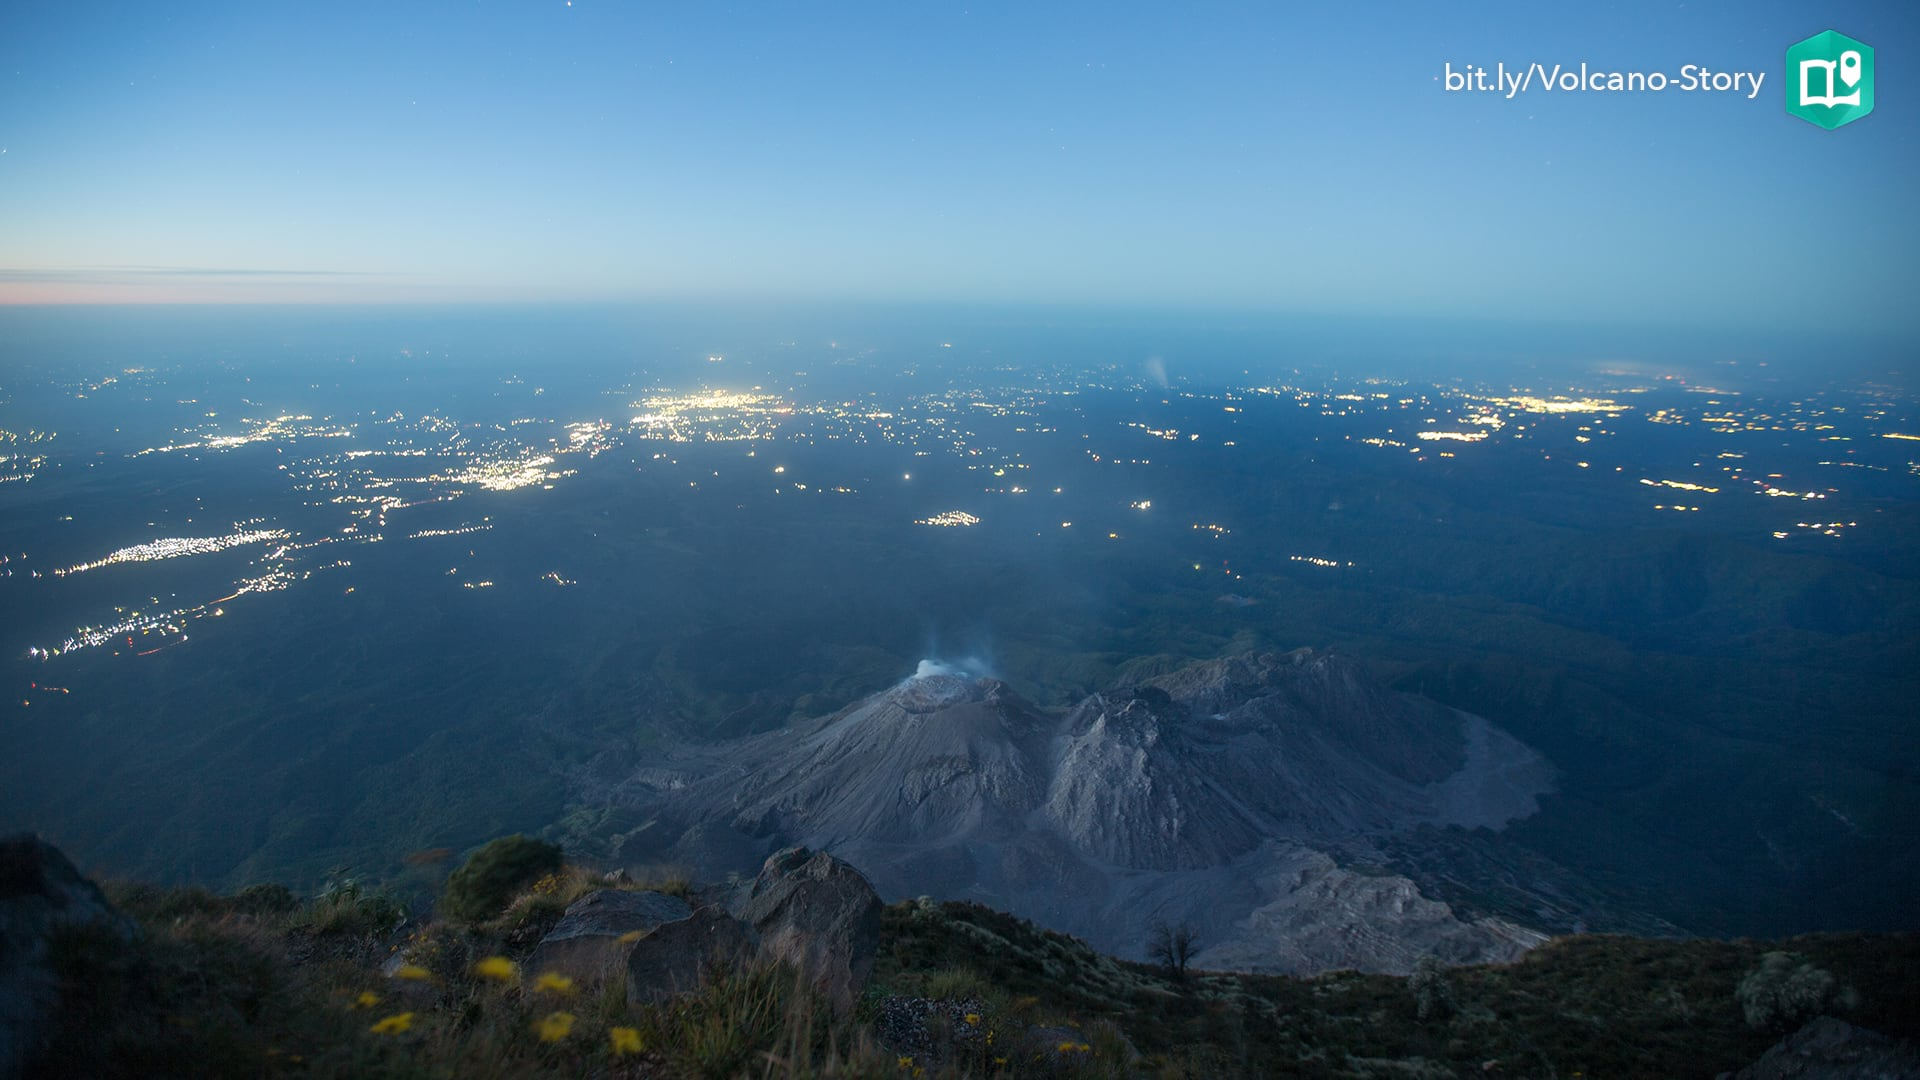 The twinkling lights of communities is visible in the pre-dawn view of Santiaguito volcano in Guatemala.